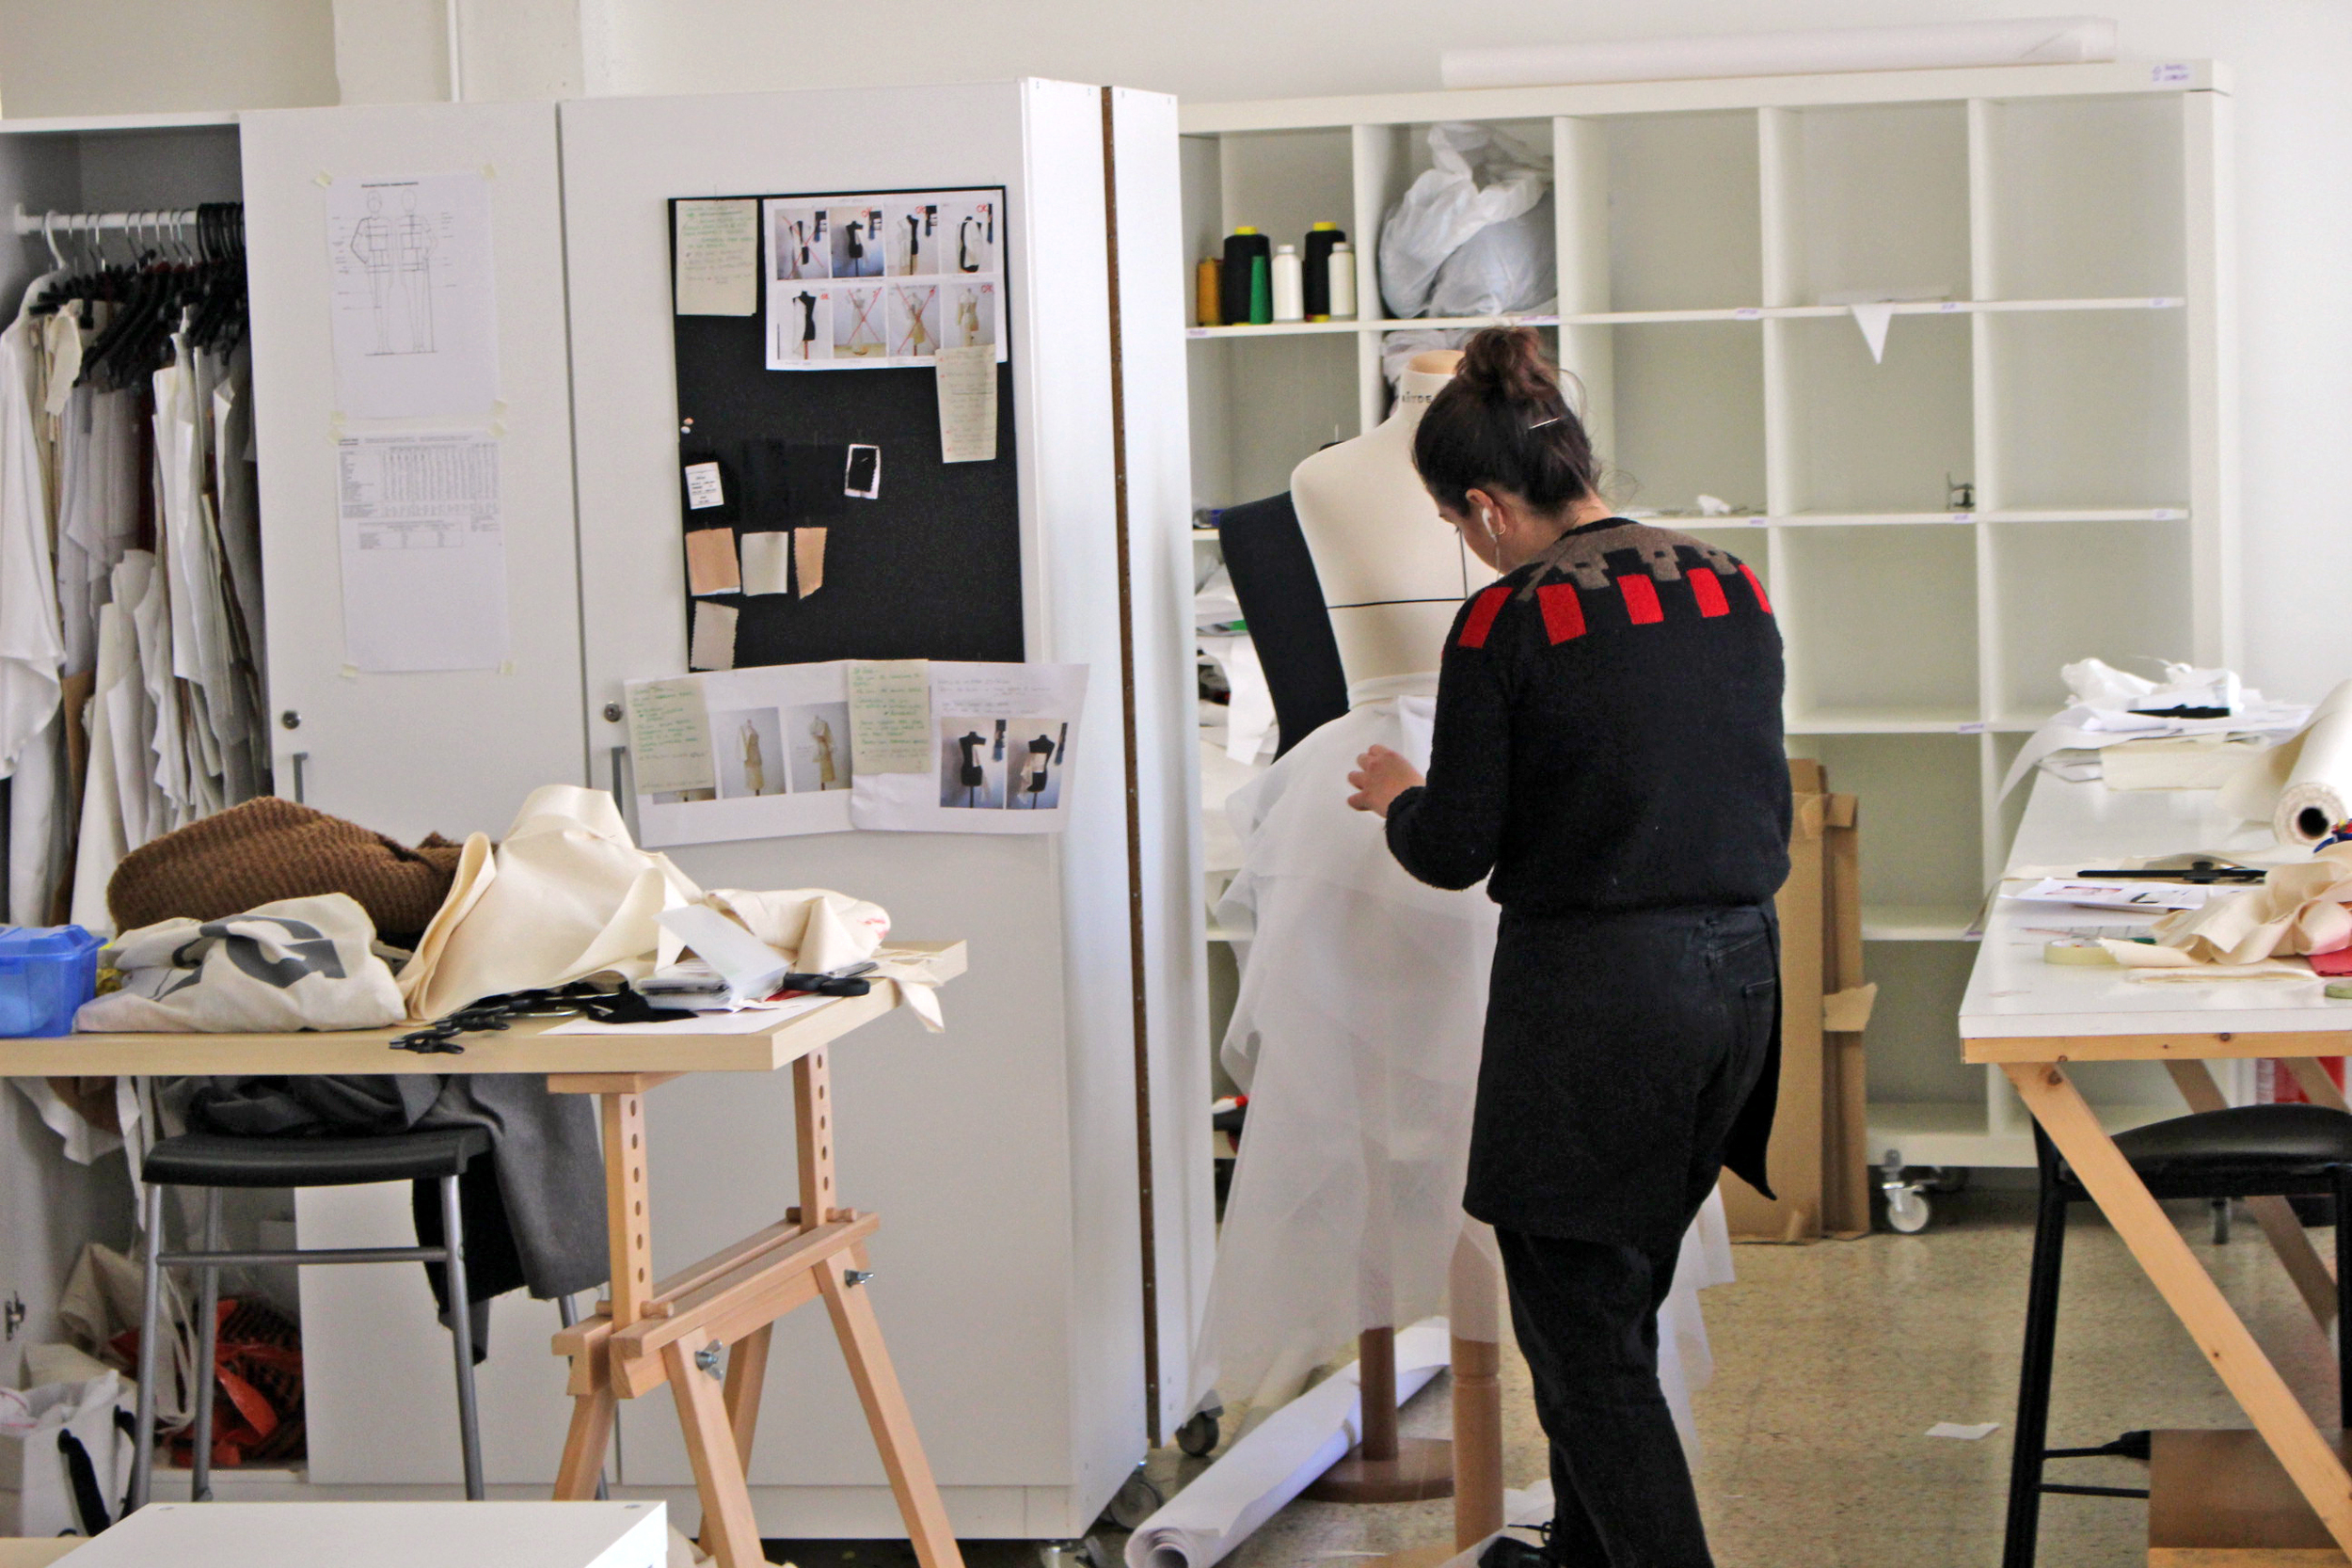 Mannequins to help design the perfect fit